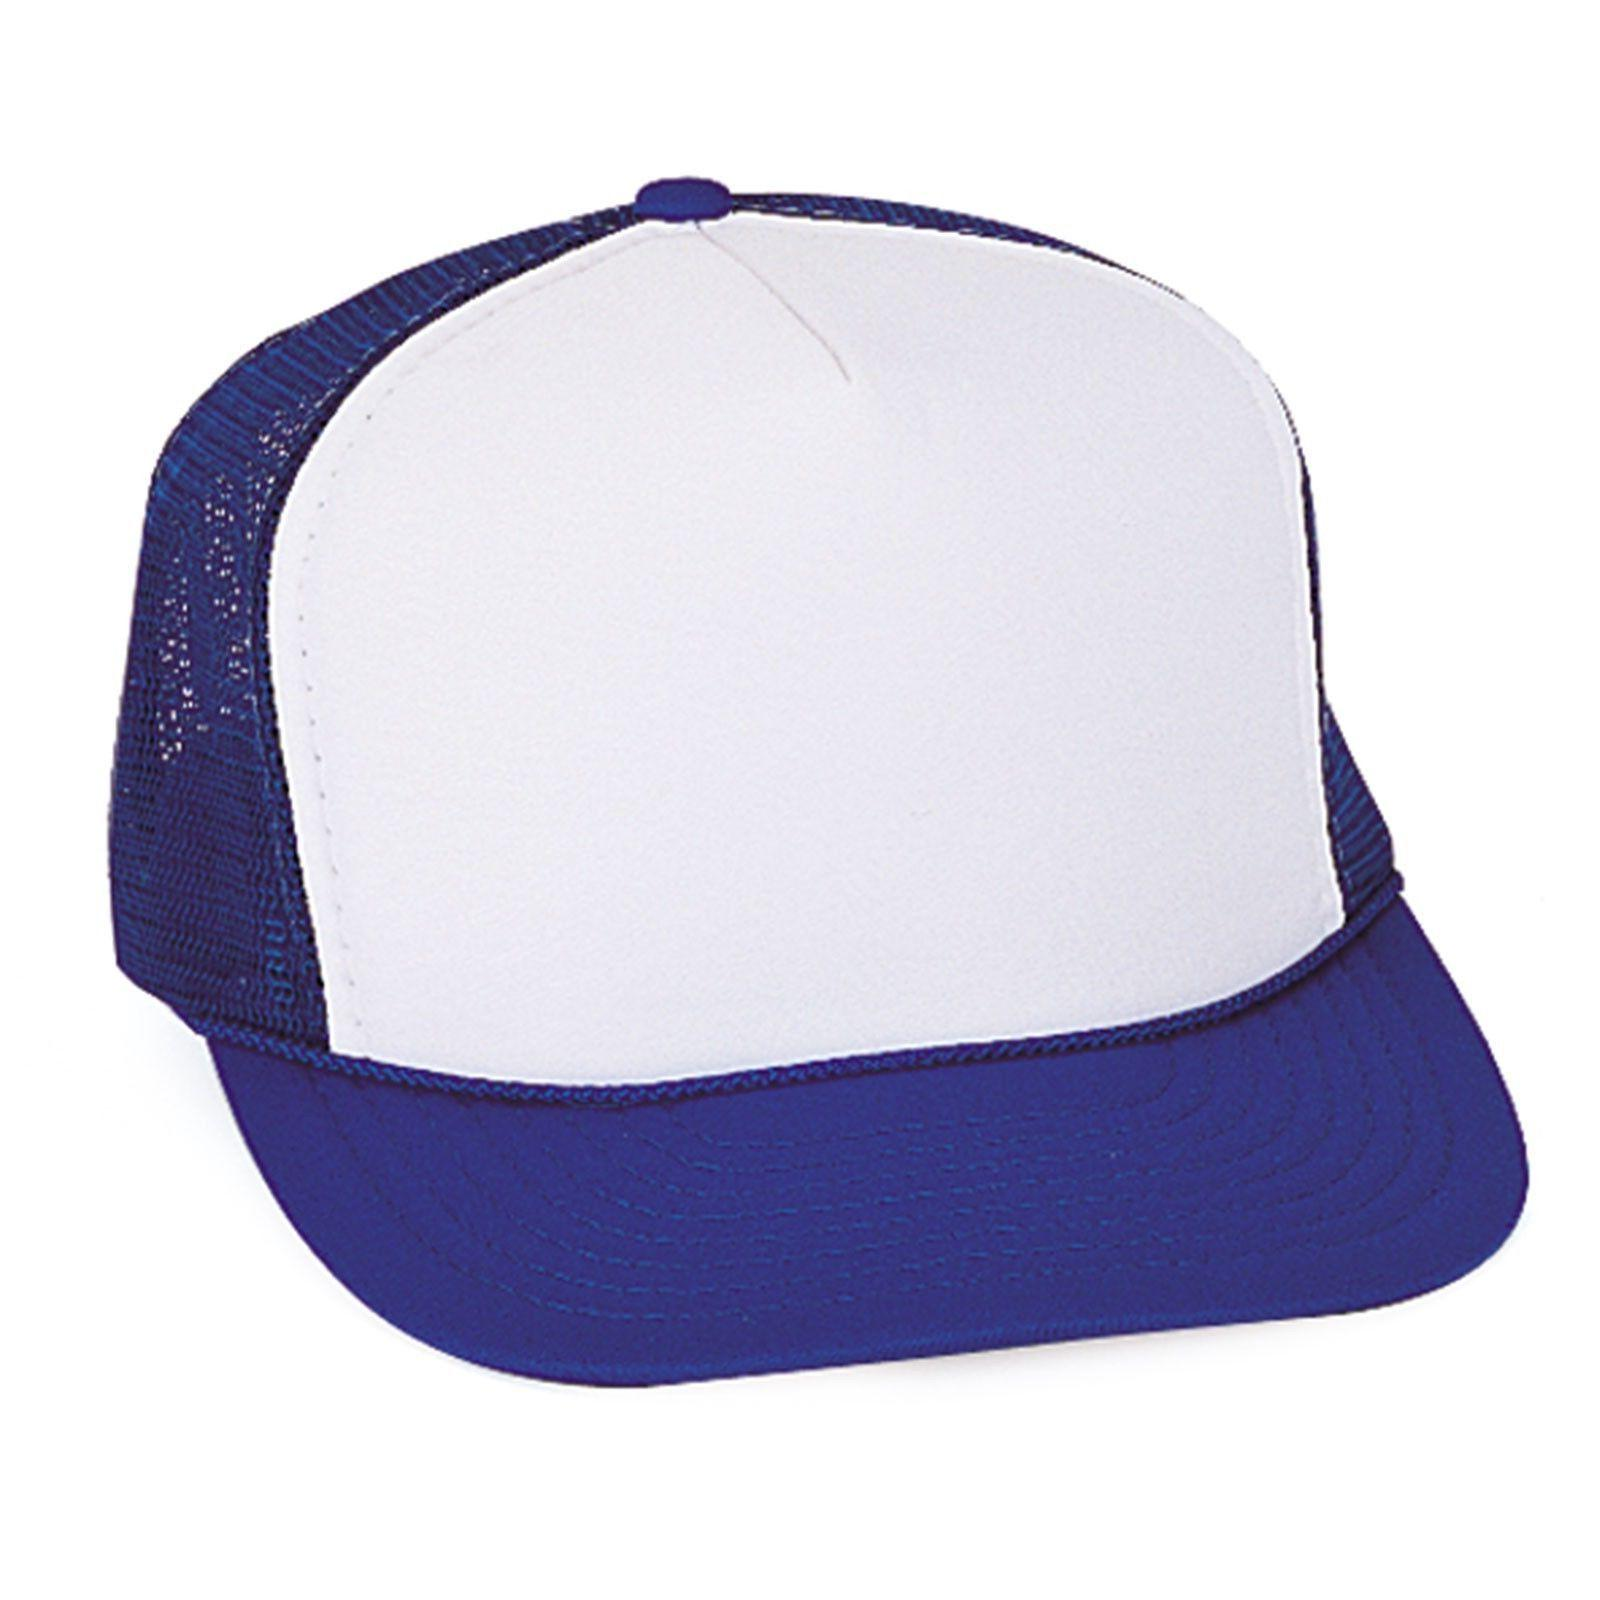 5 Pack Trucker Hats Blank Youth Wholesale